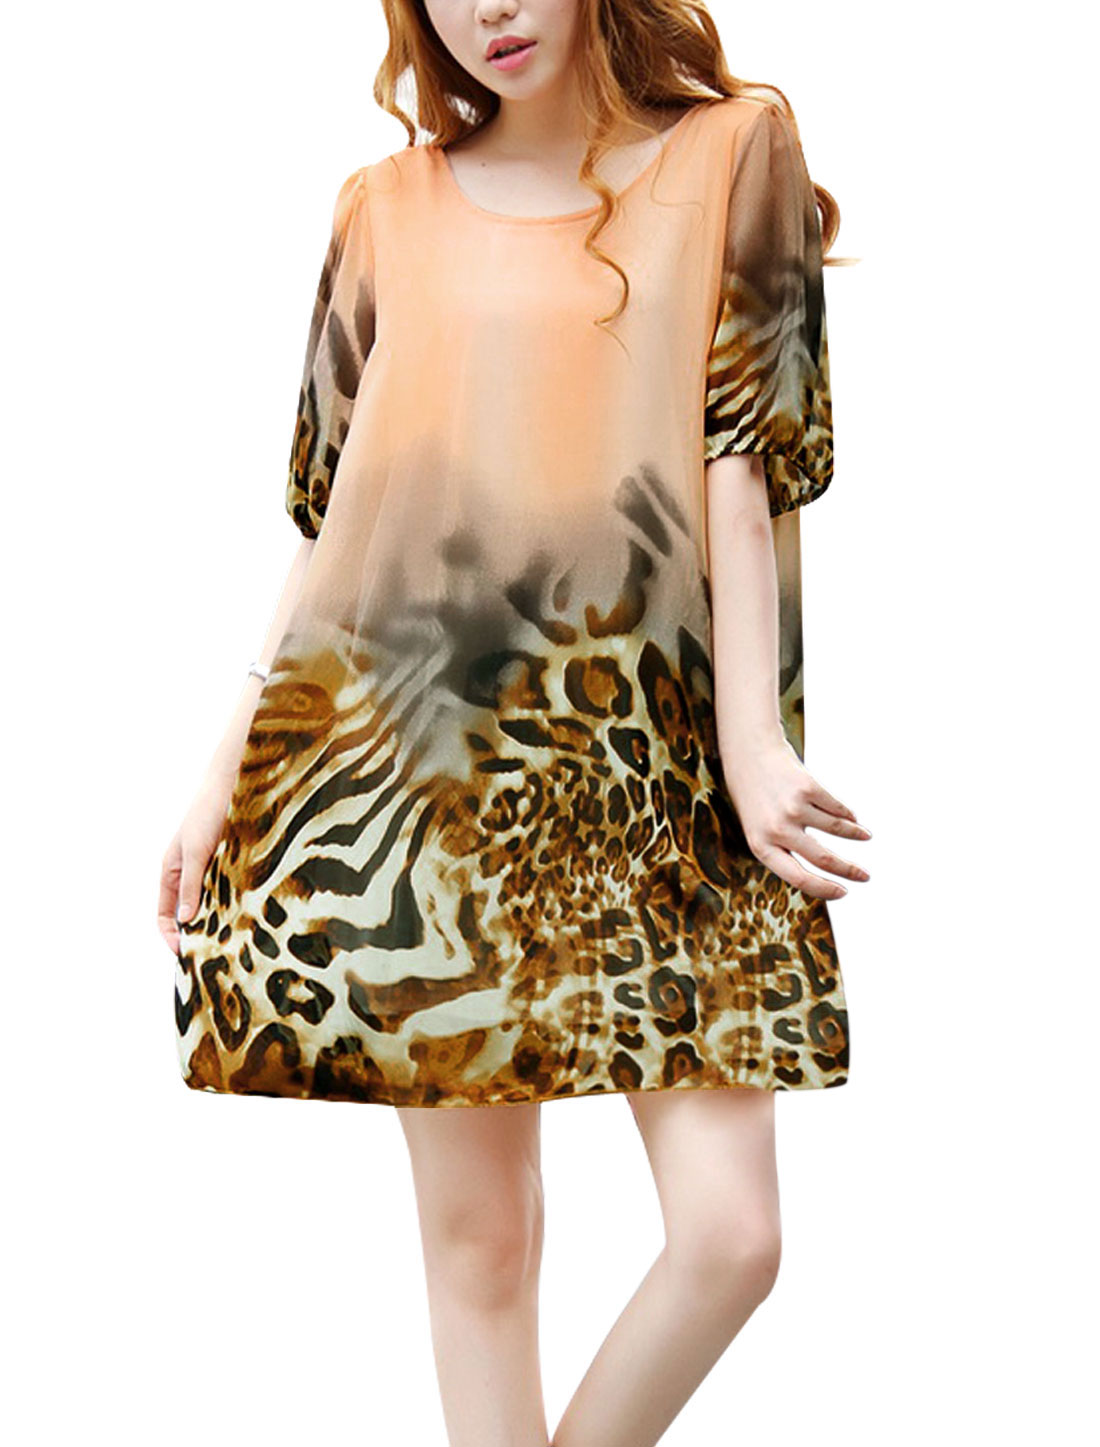 Lady Short Sleeve Elastic Cuffs Leopard Prints Lining Chiffon Dress Salmon S